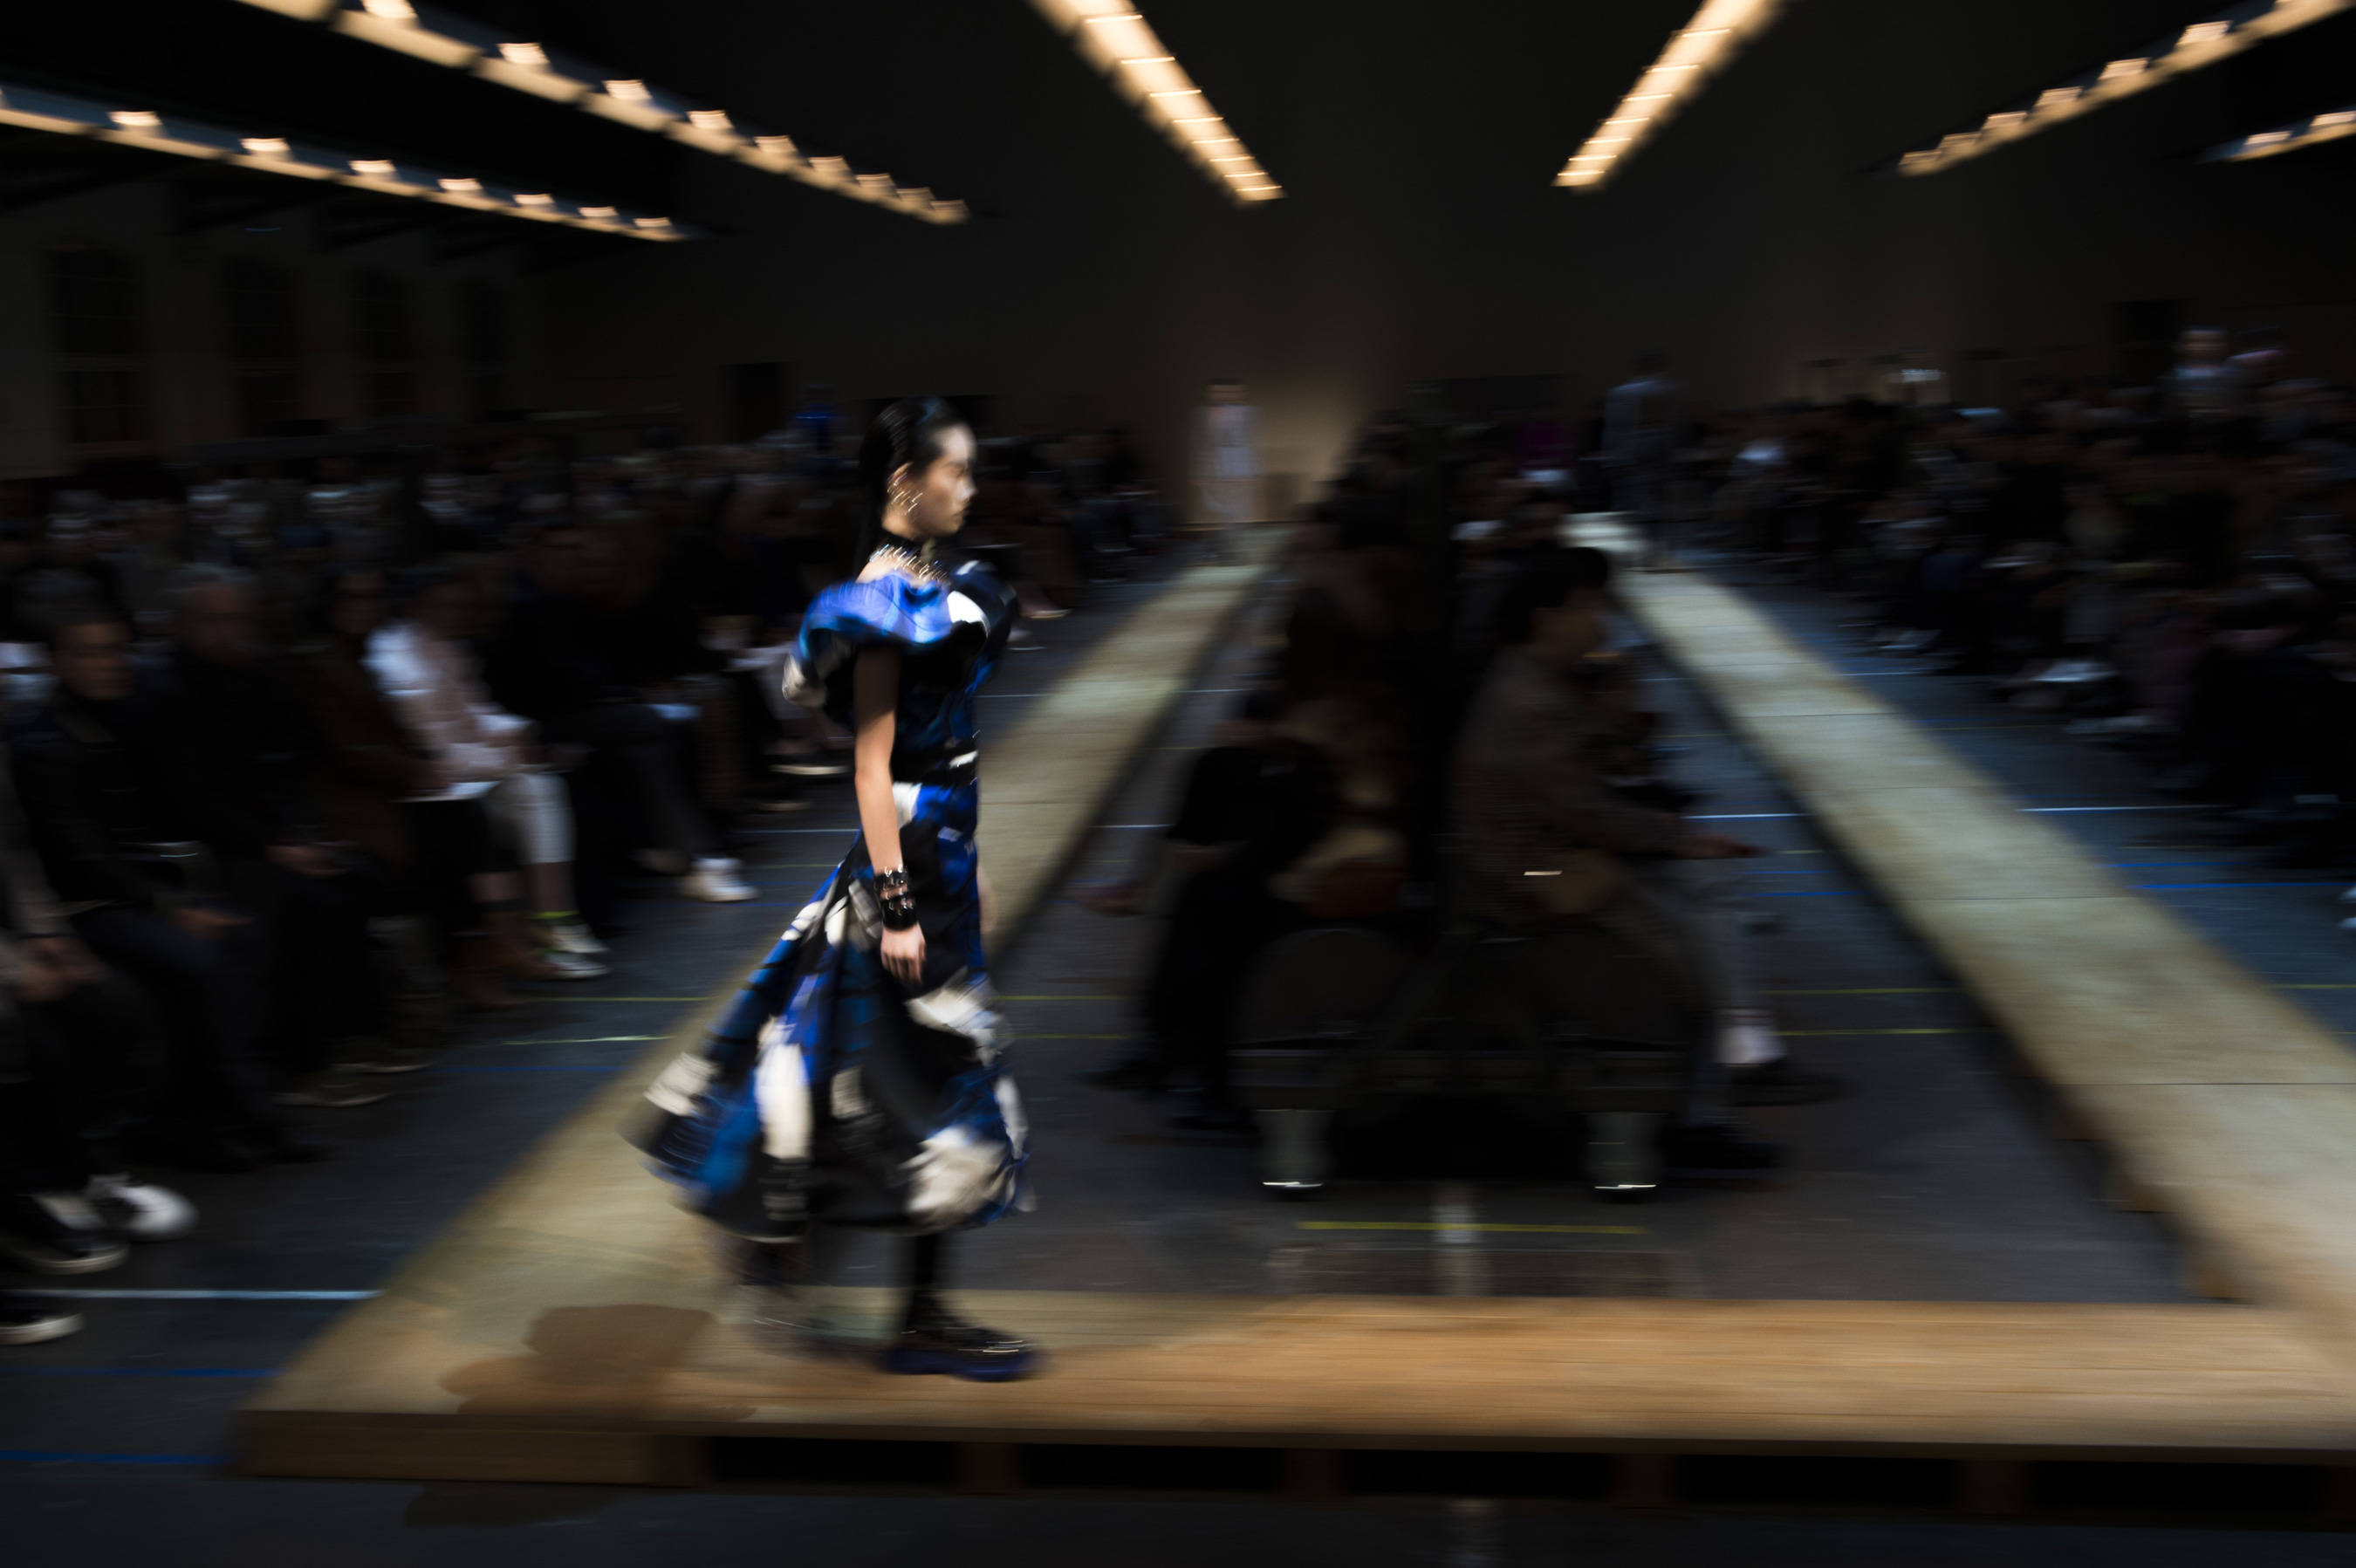 Alexander Mcqueen Fall 2019 Fashion Show Atmosphere